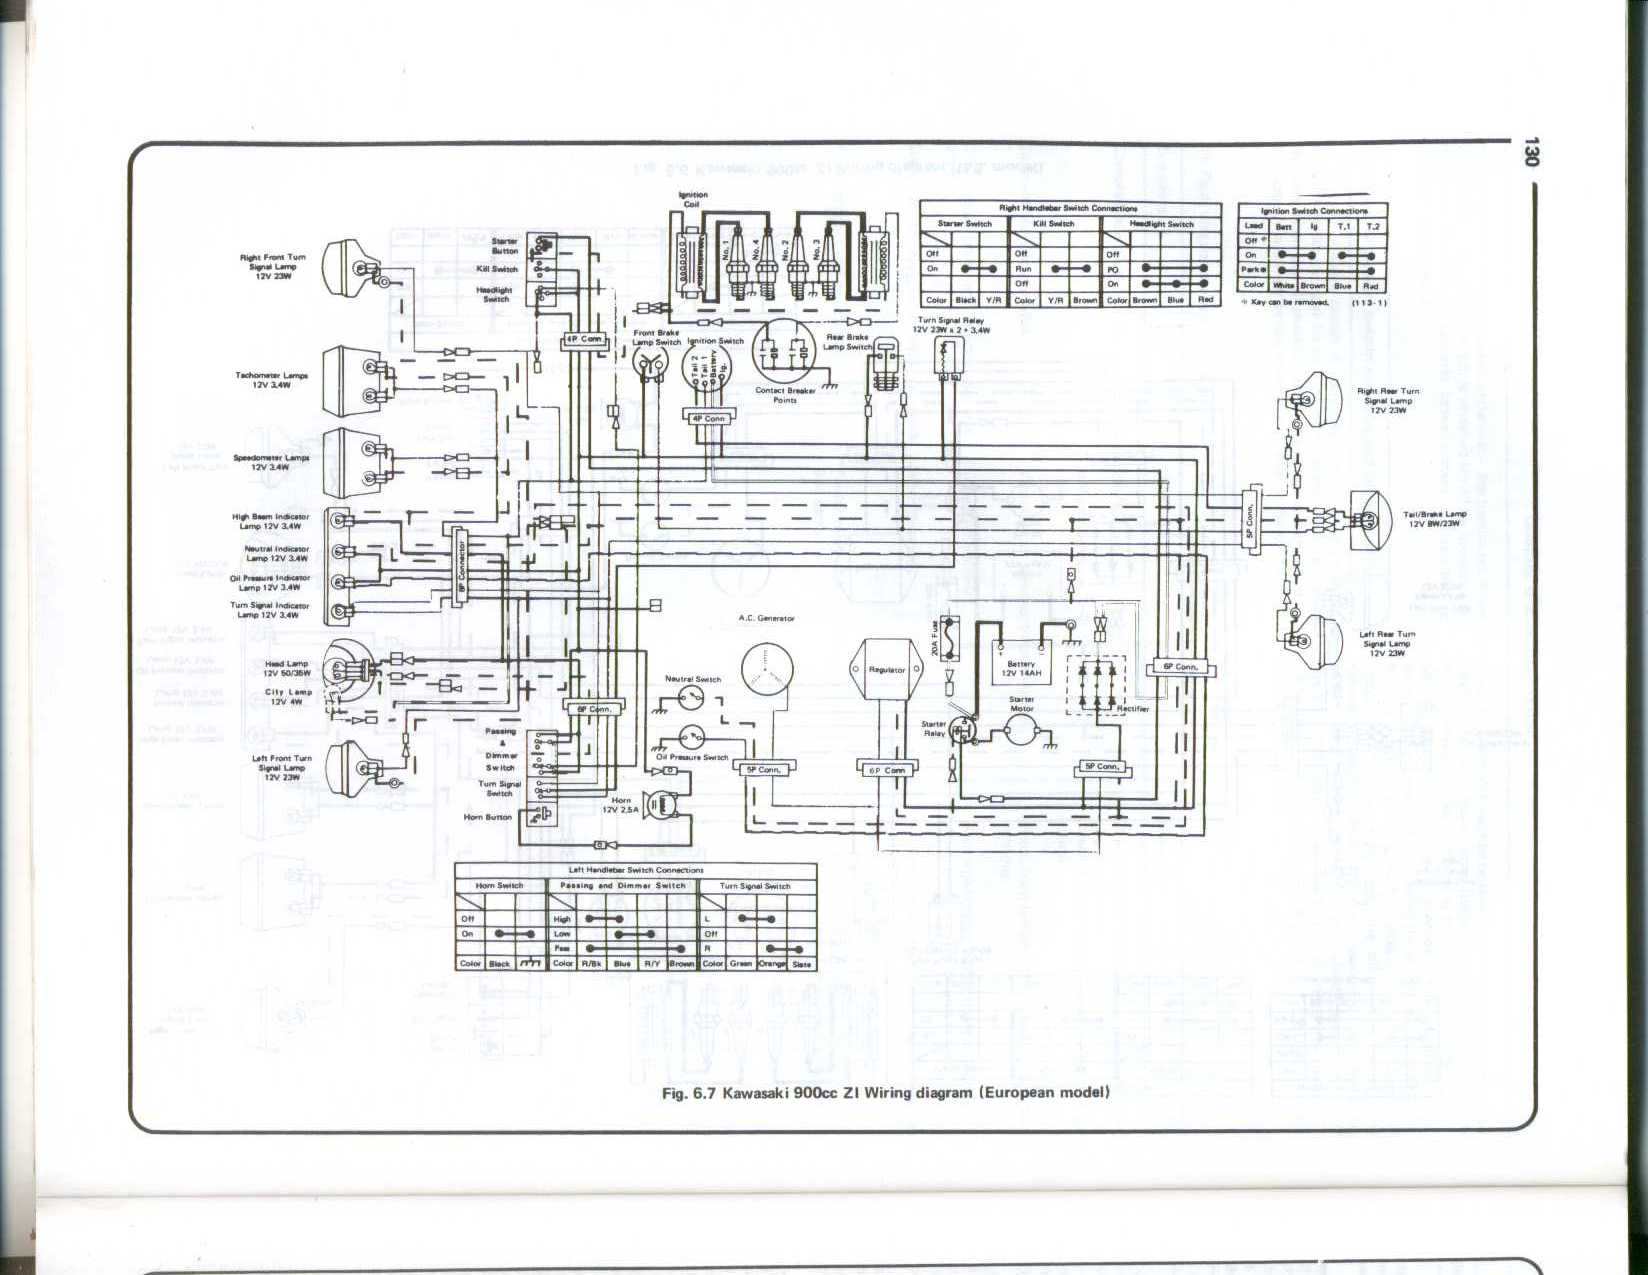 hight resolution of wiring diagram for kawasaki z1 wiring diagrams active 2017 kawasaki z900 wiring diagram kawasaki z900 wiring diagram